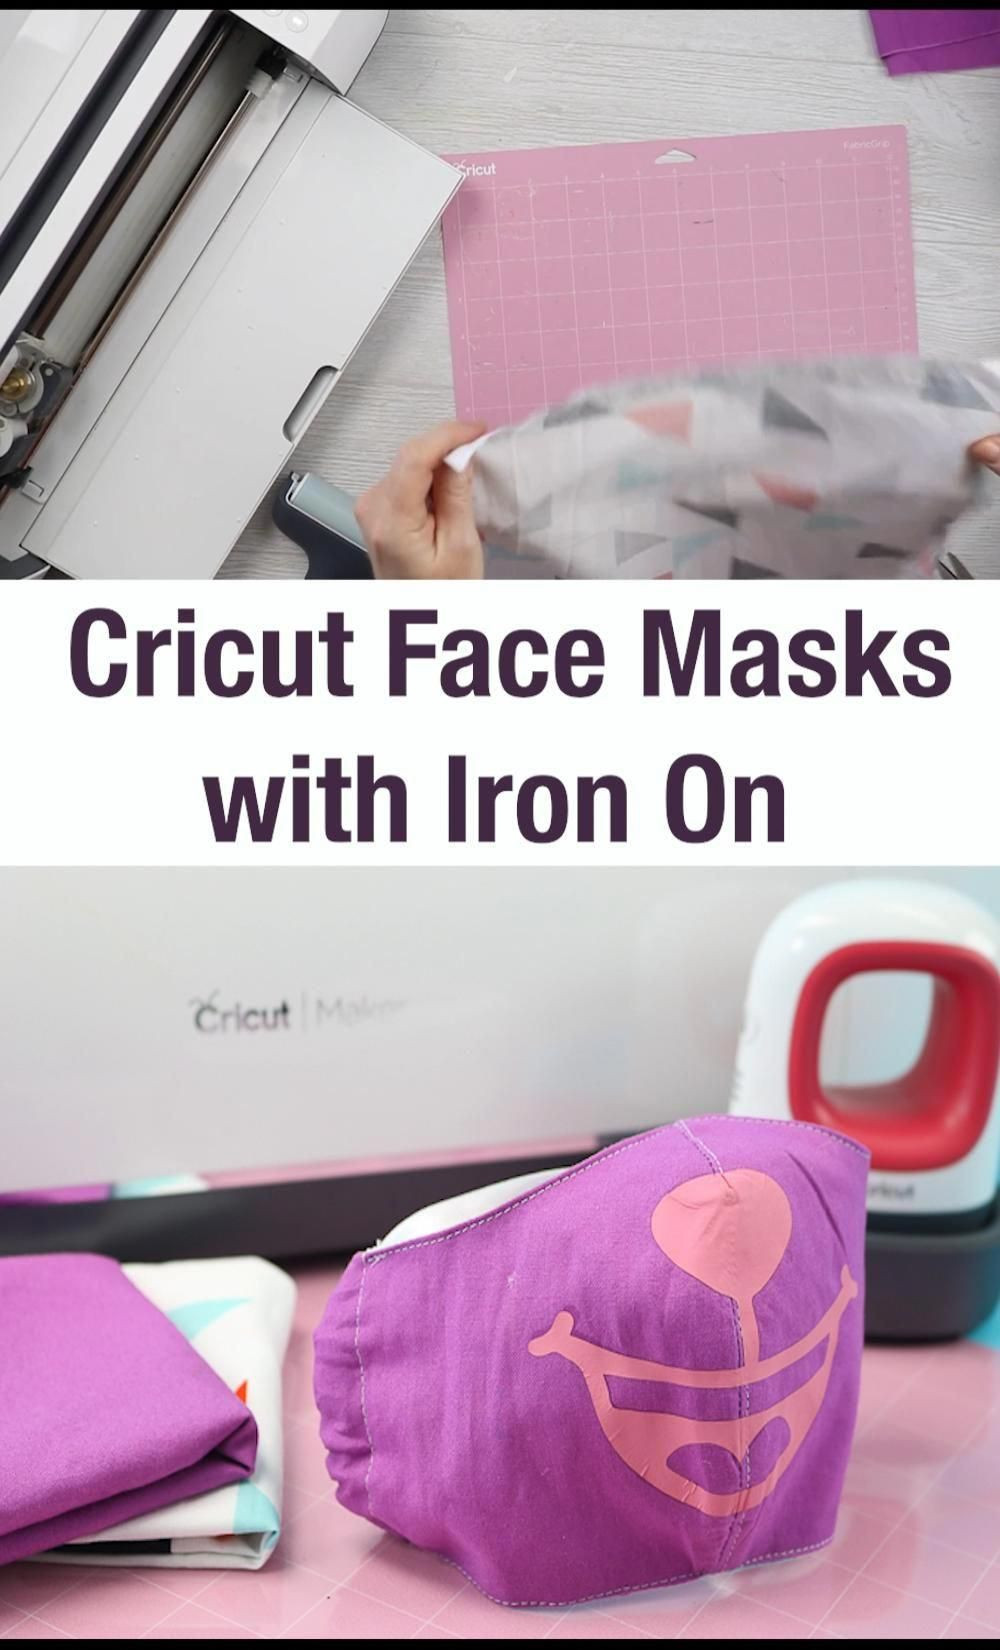 diy face mask crochet pattern in 2020 Cricut, Cricut